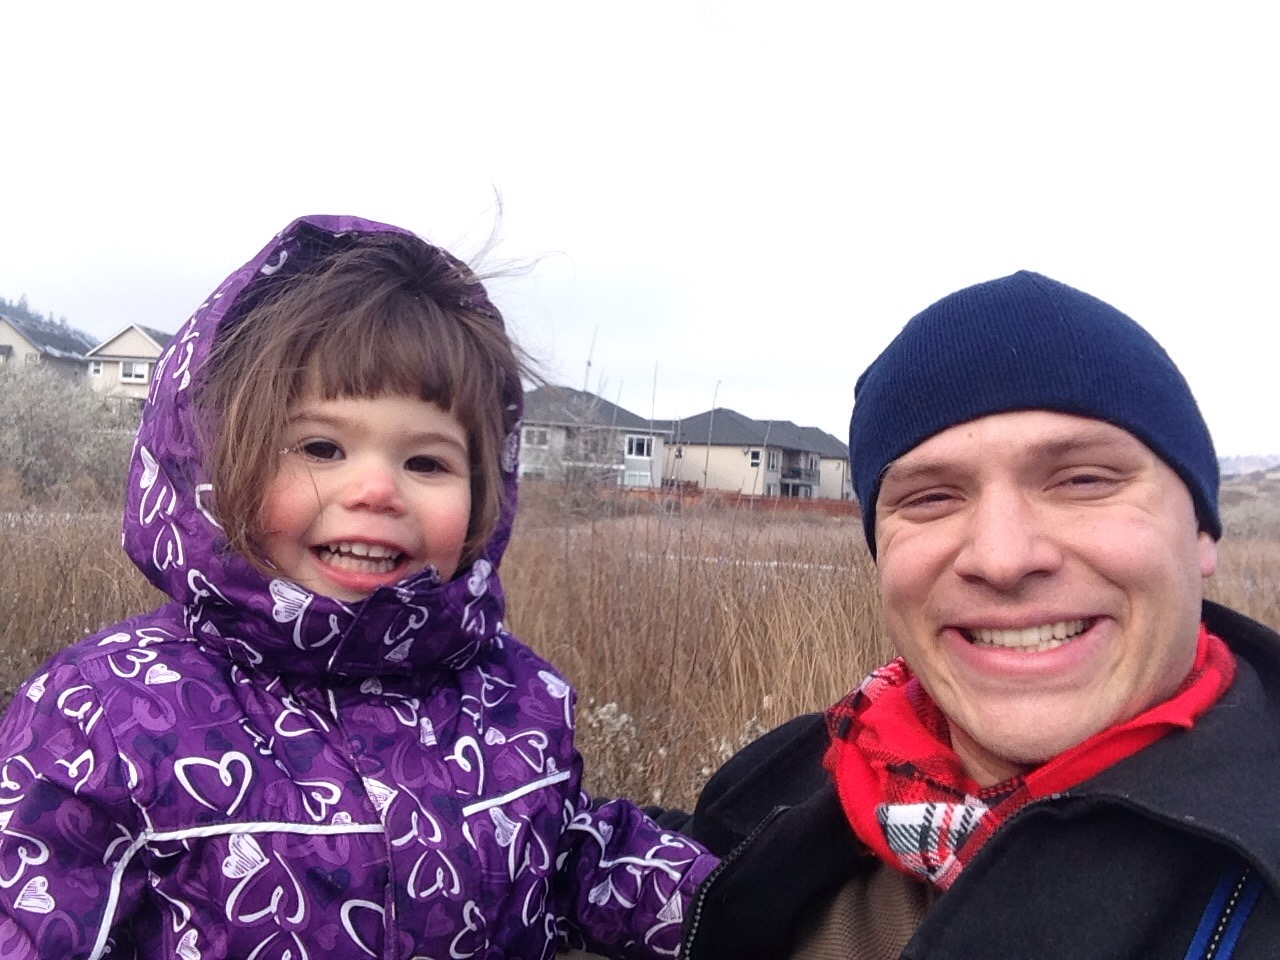 Livy and me on a walk after I got back from the REIN meeting(the next day)